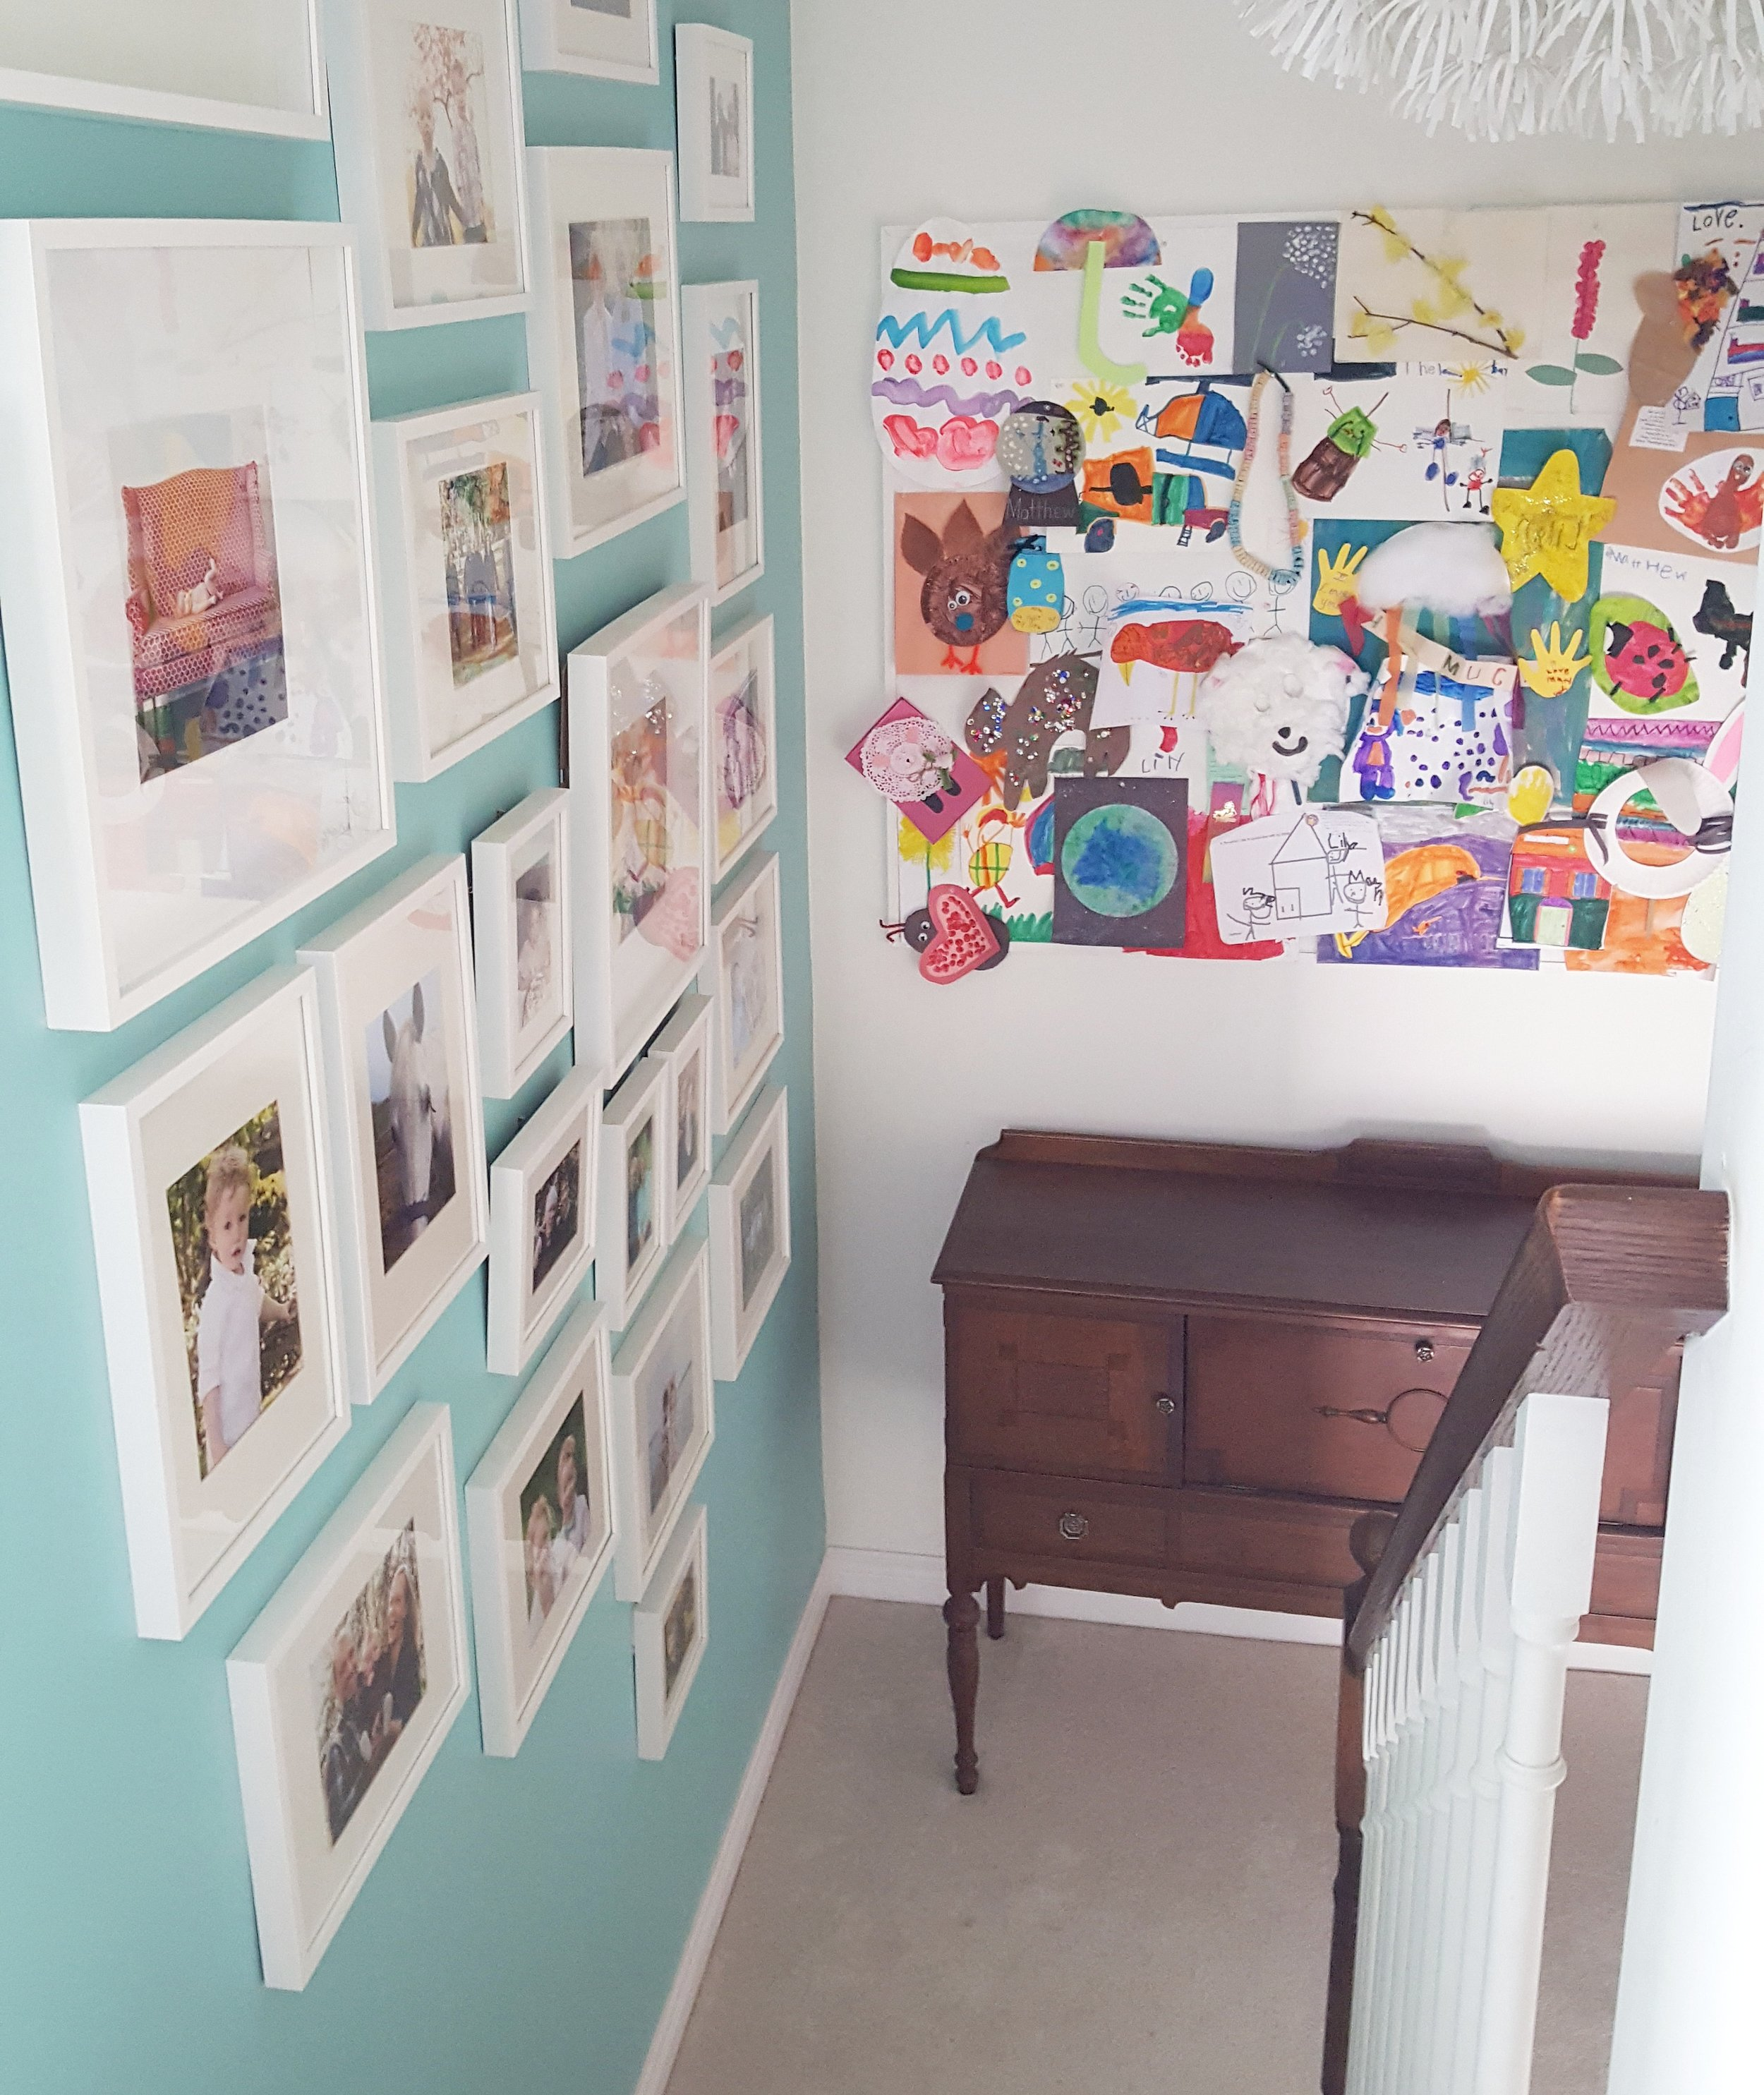 Gallery & Art Walls